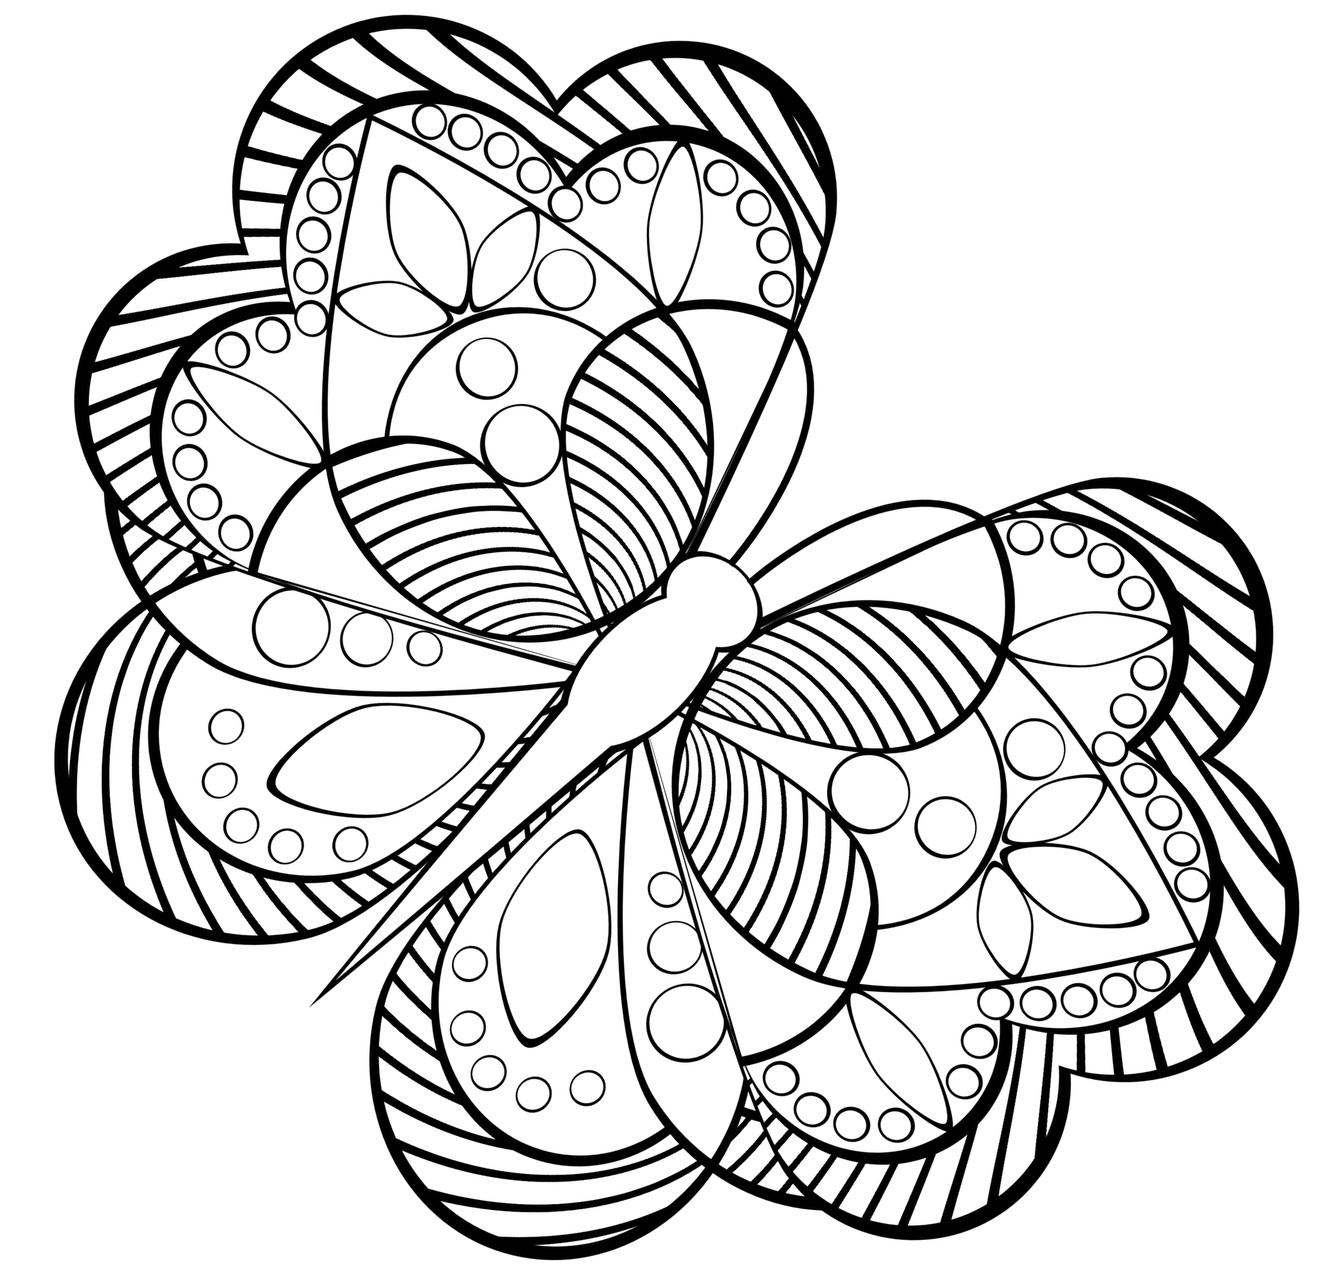 Best ideas about Printable Coloring Pages For Adults Free . Save or Pin Free Coloring Pages For Adults To Print Special Image 12 Now.